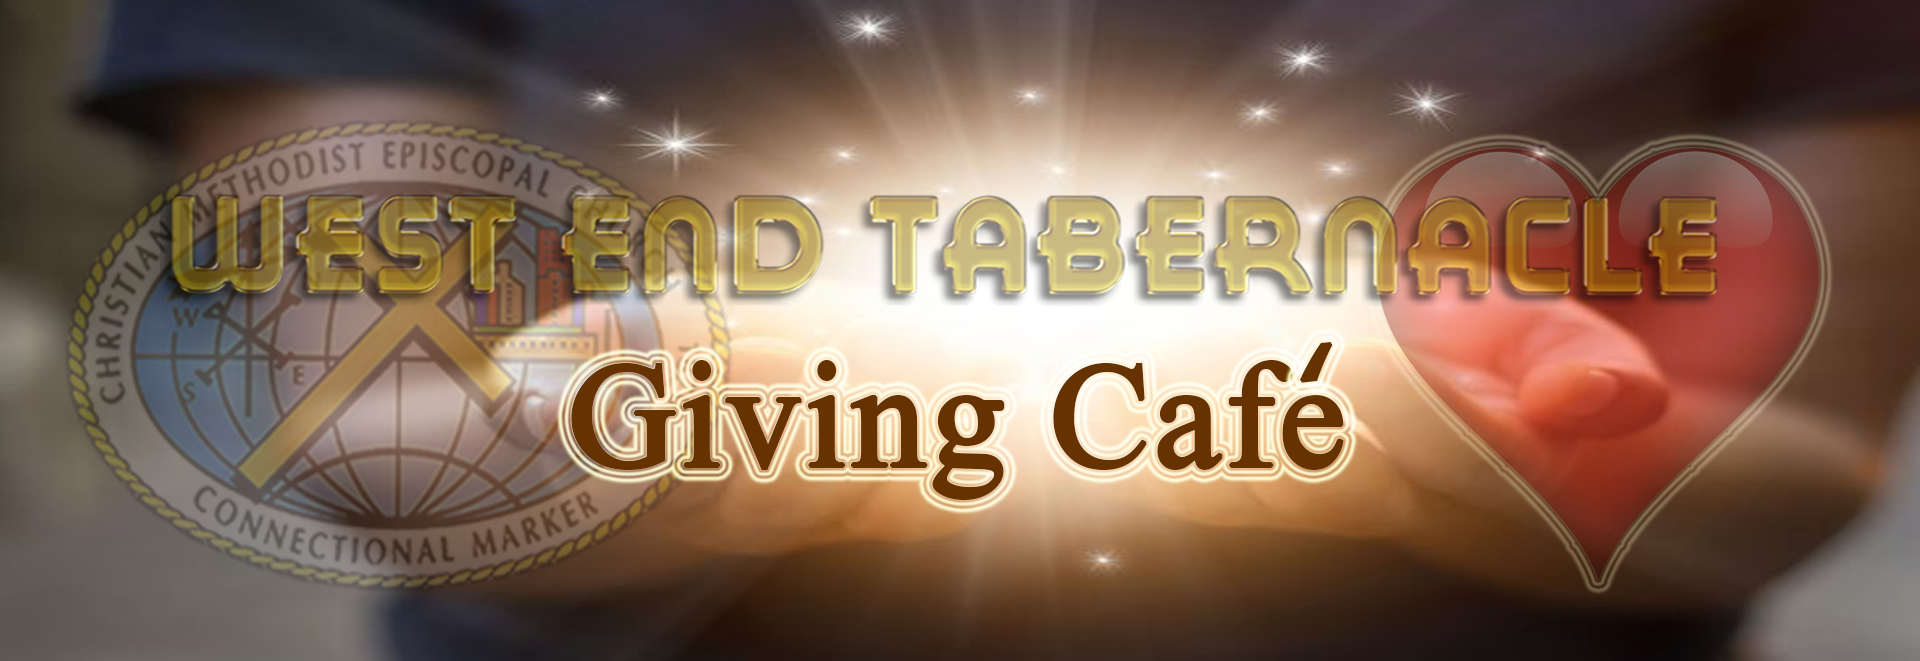 givingcafe2.png